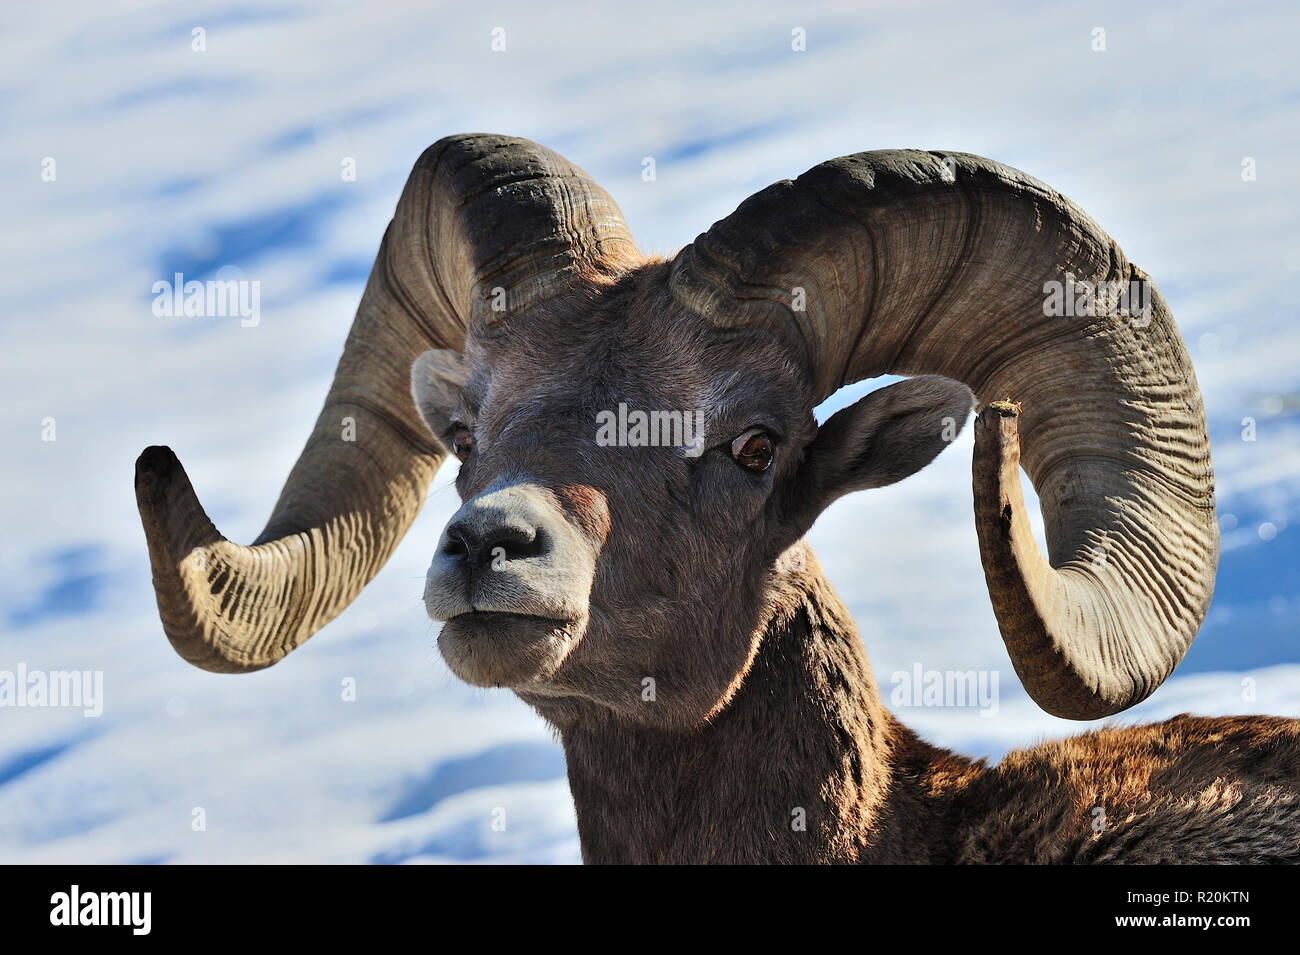 A portrait of a male rocky mountain bighorn sheep 'Ovis canadensis', in rural Alberta Canada - Stock Image